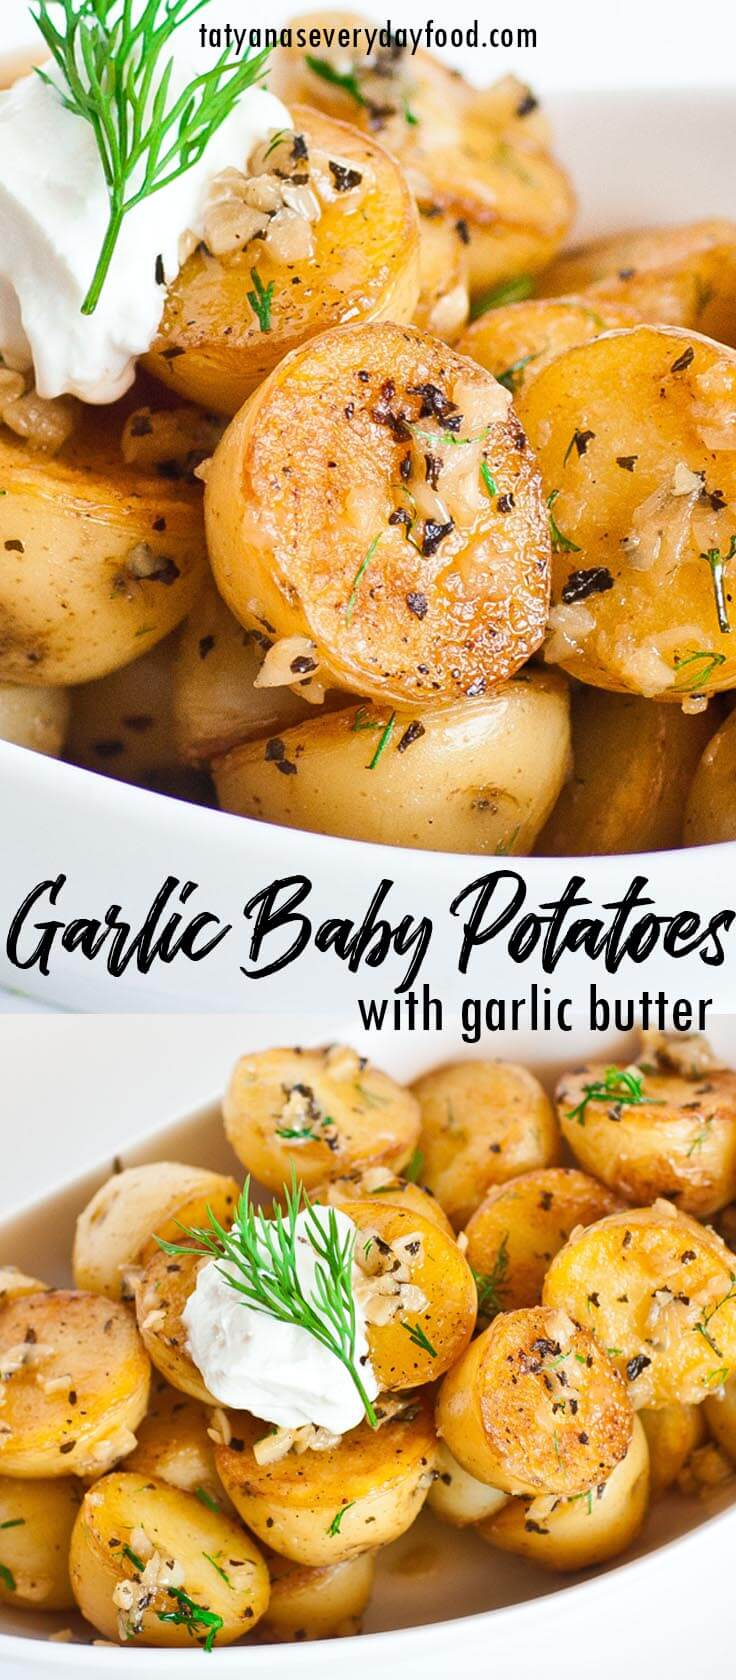 Garlic Baby Potatoes video recipe